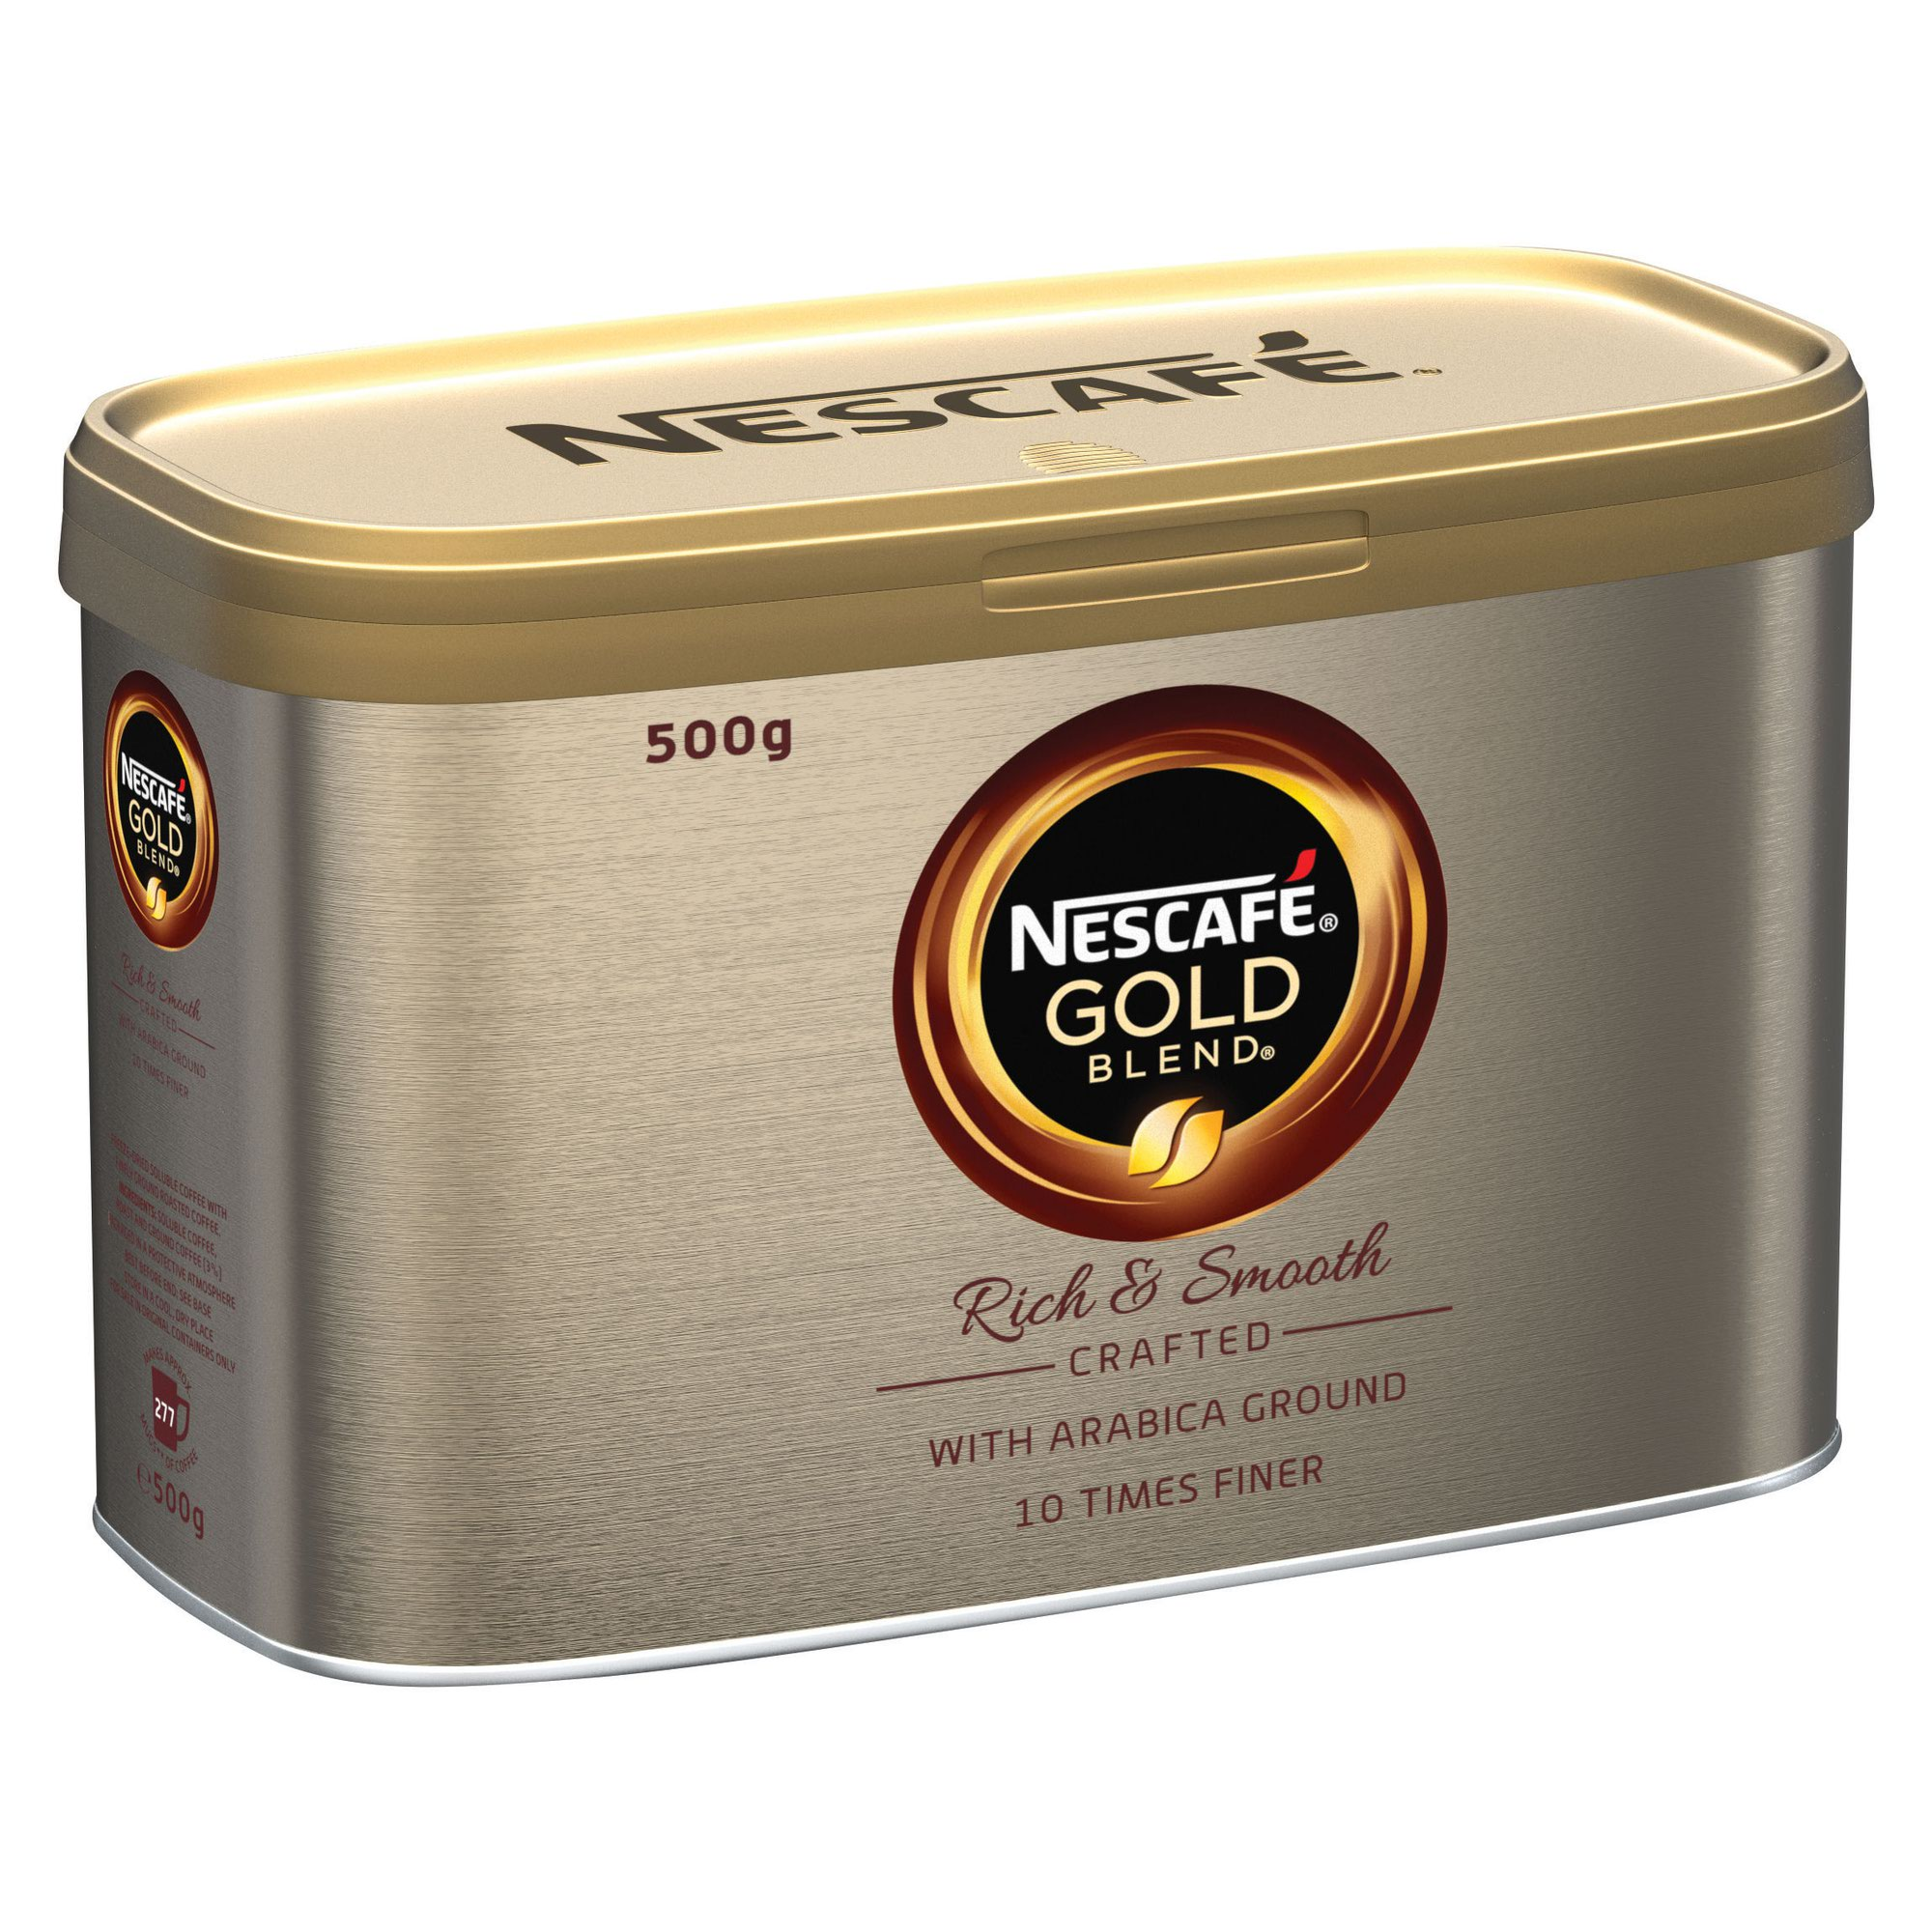 NESCAFE GOLD BLEND Coffee Granules 500g